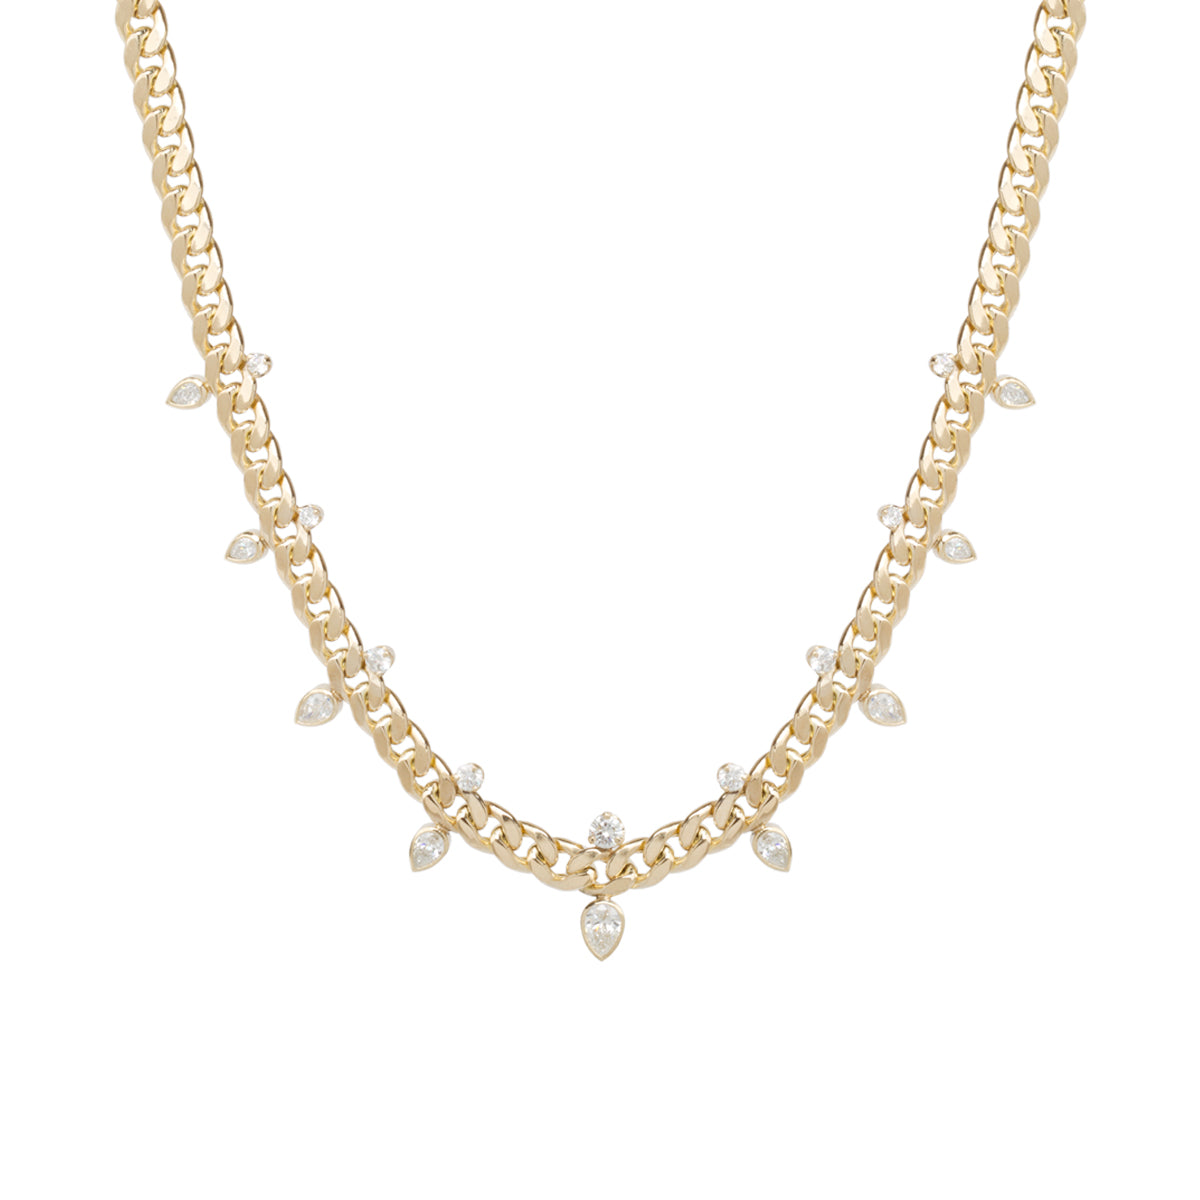 14k gold large curb chain necklace with prong and pear diamonds